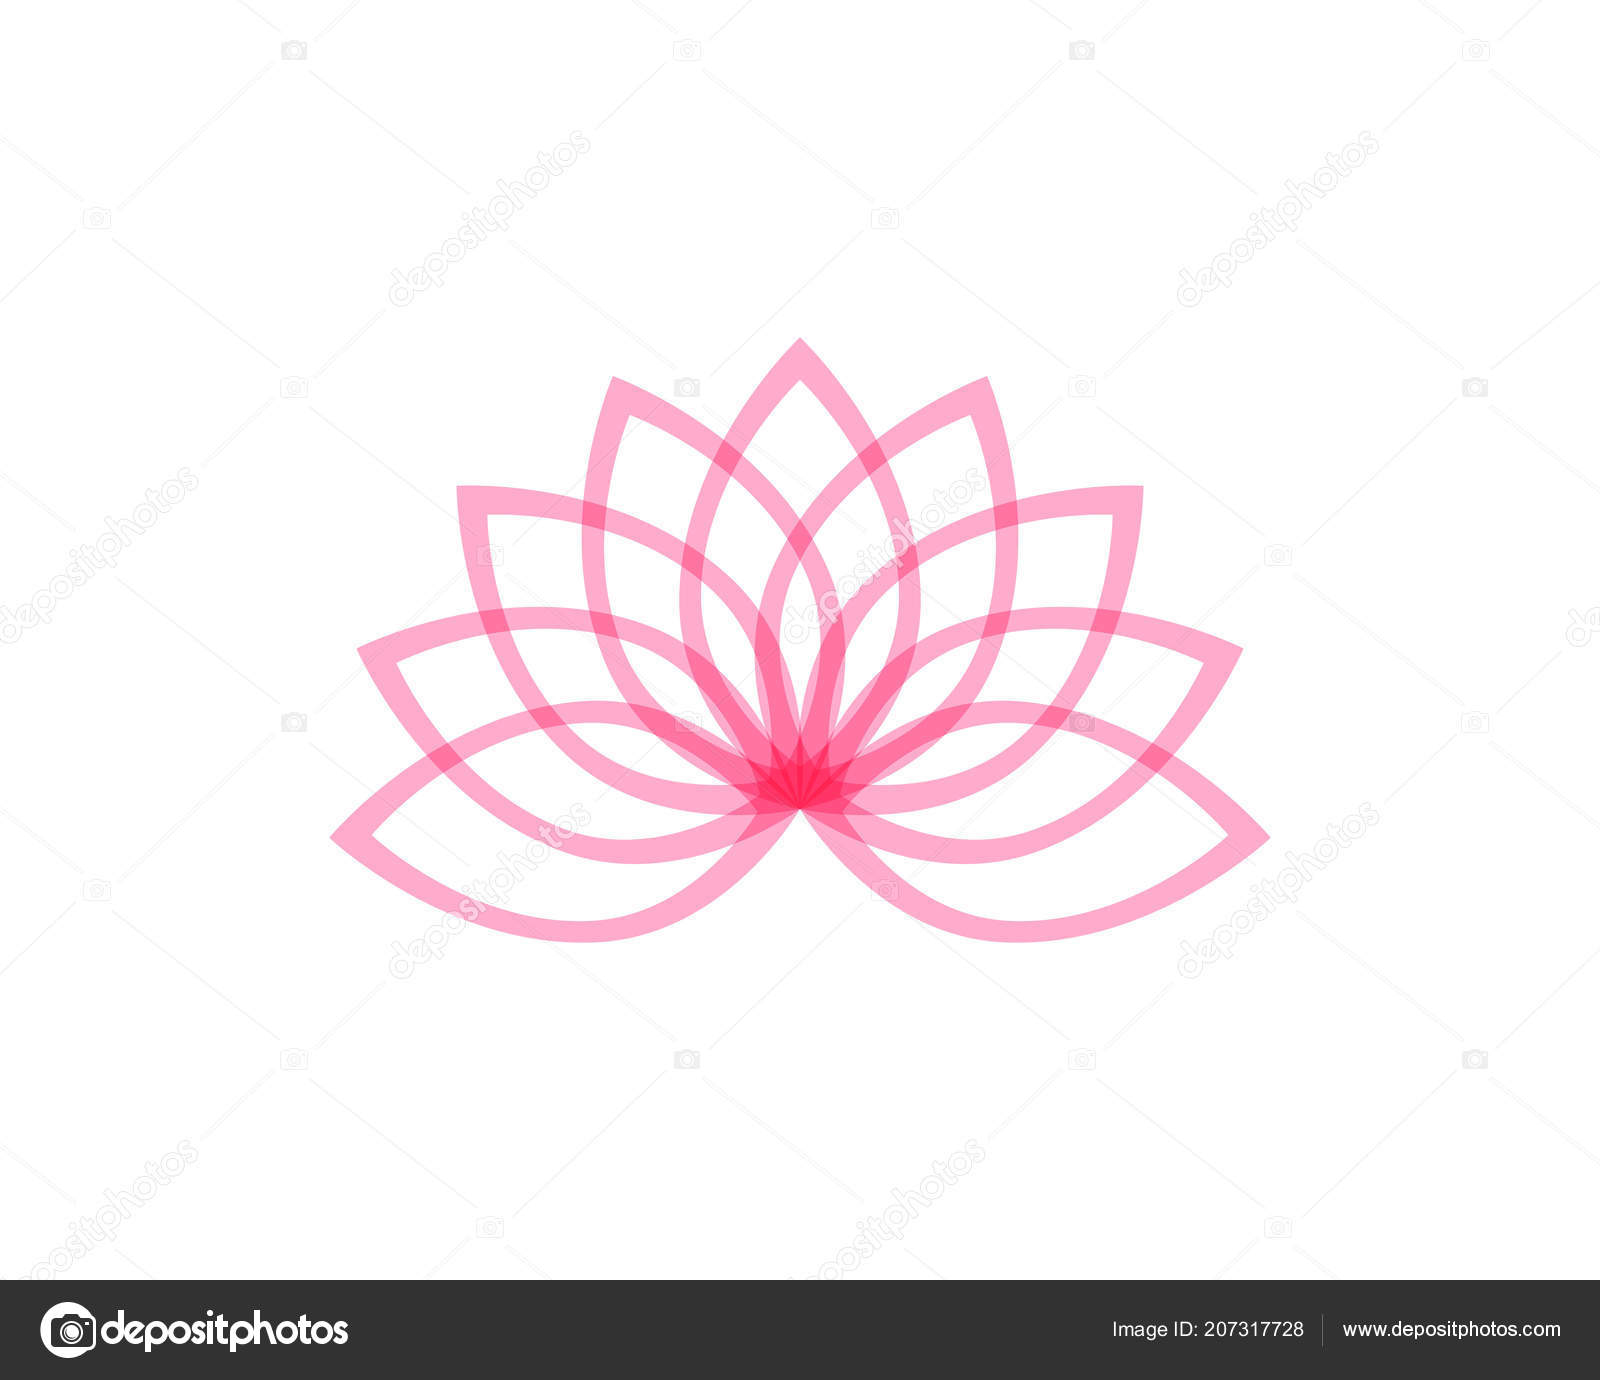 Lotus Flower Logo Symbols Vector Template Icons Stock Vector C Hatigraphic 207317728